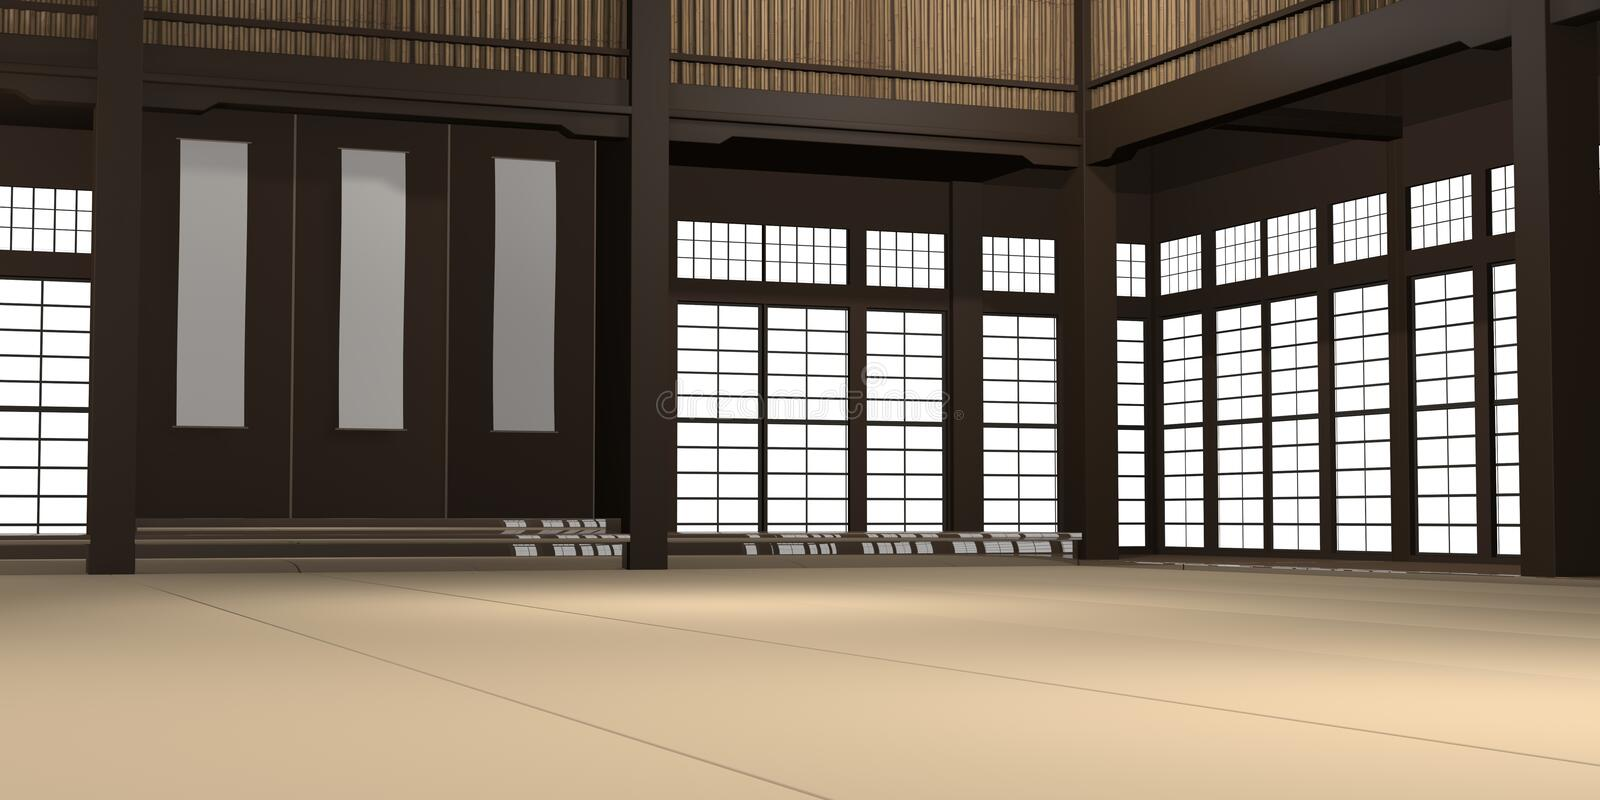 3d rendered illustration of a traditional karate dojo or school with training mat and rice paper windows. 3d rendered illustration of a traditional karate dojo stock illustration